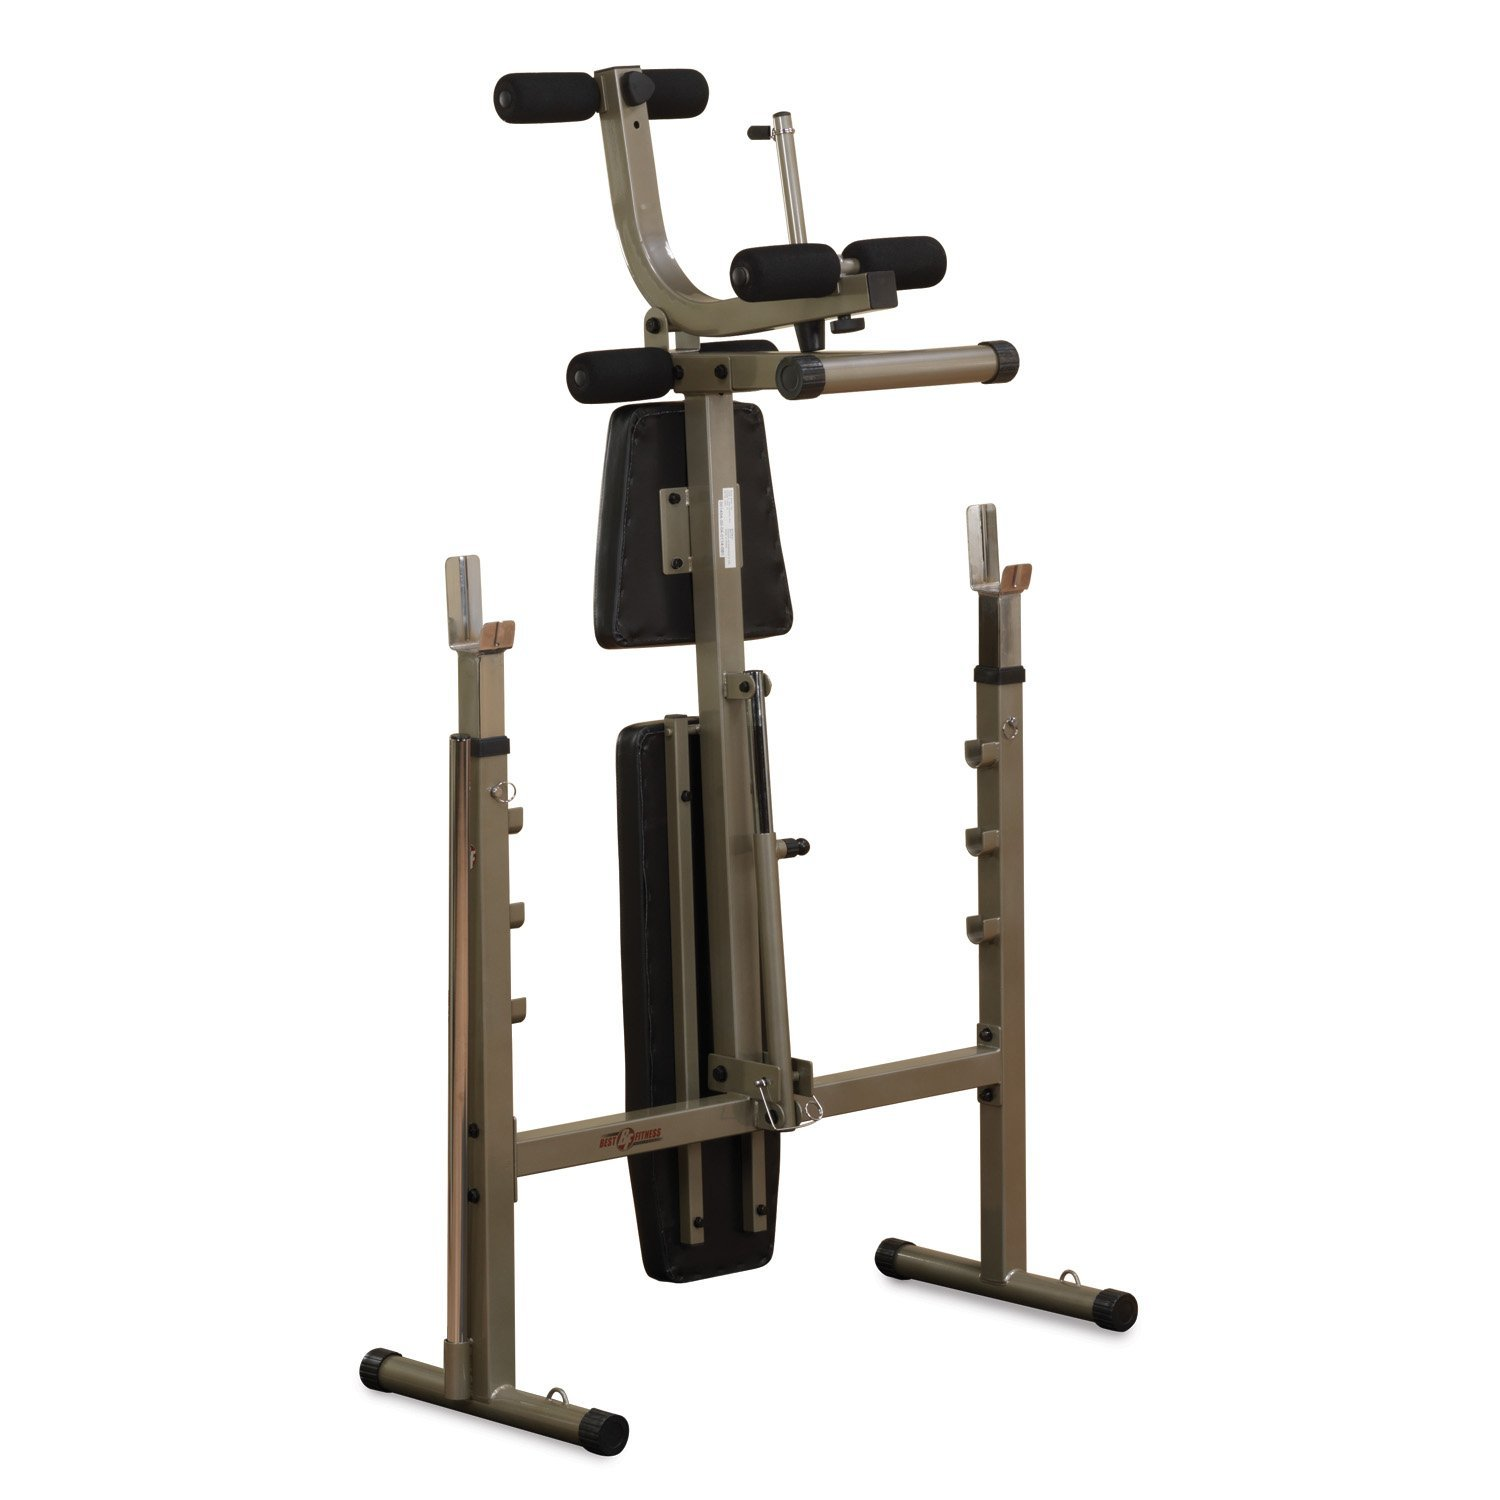 Best Fitness Bfob10 Olympic Bench Review: bench weights